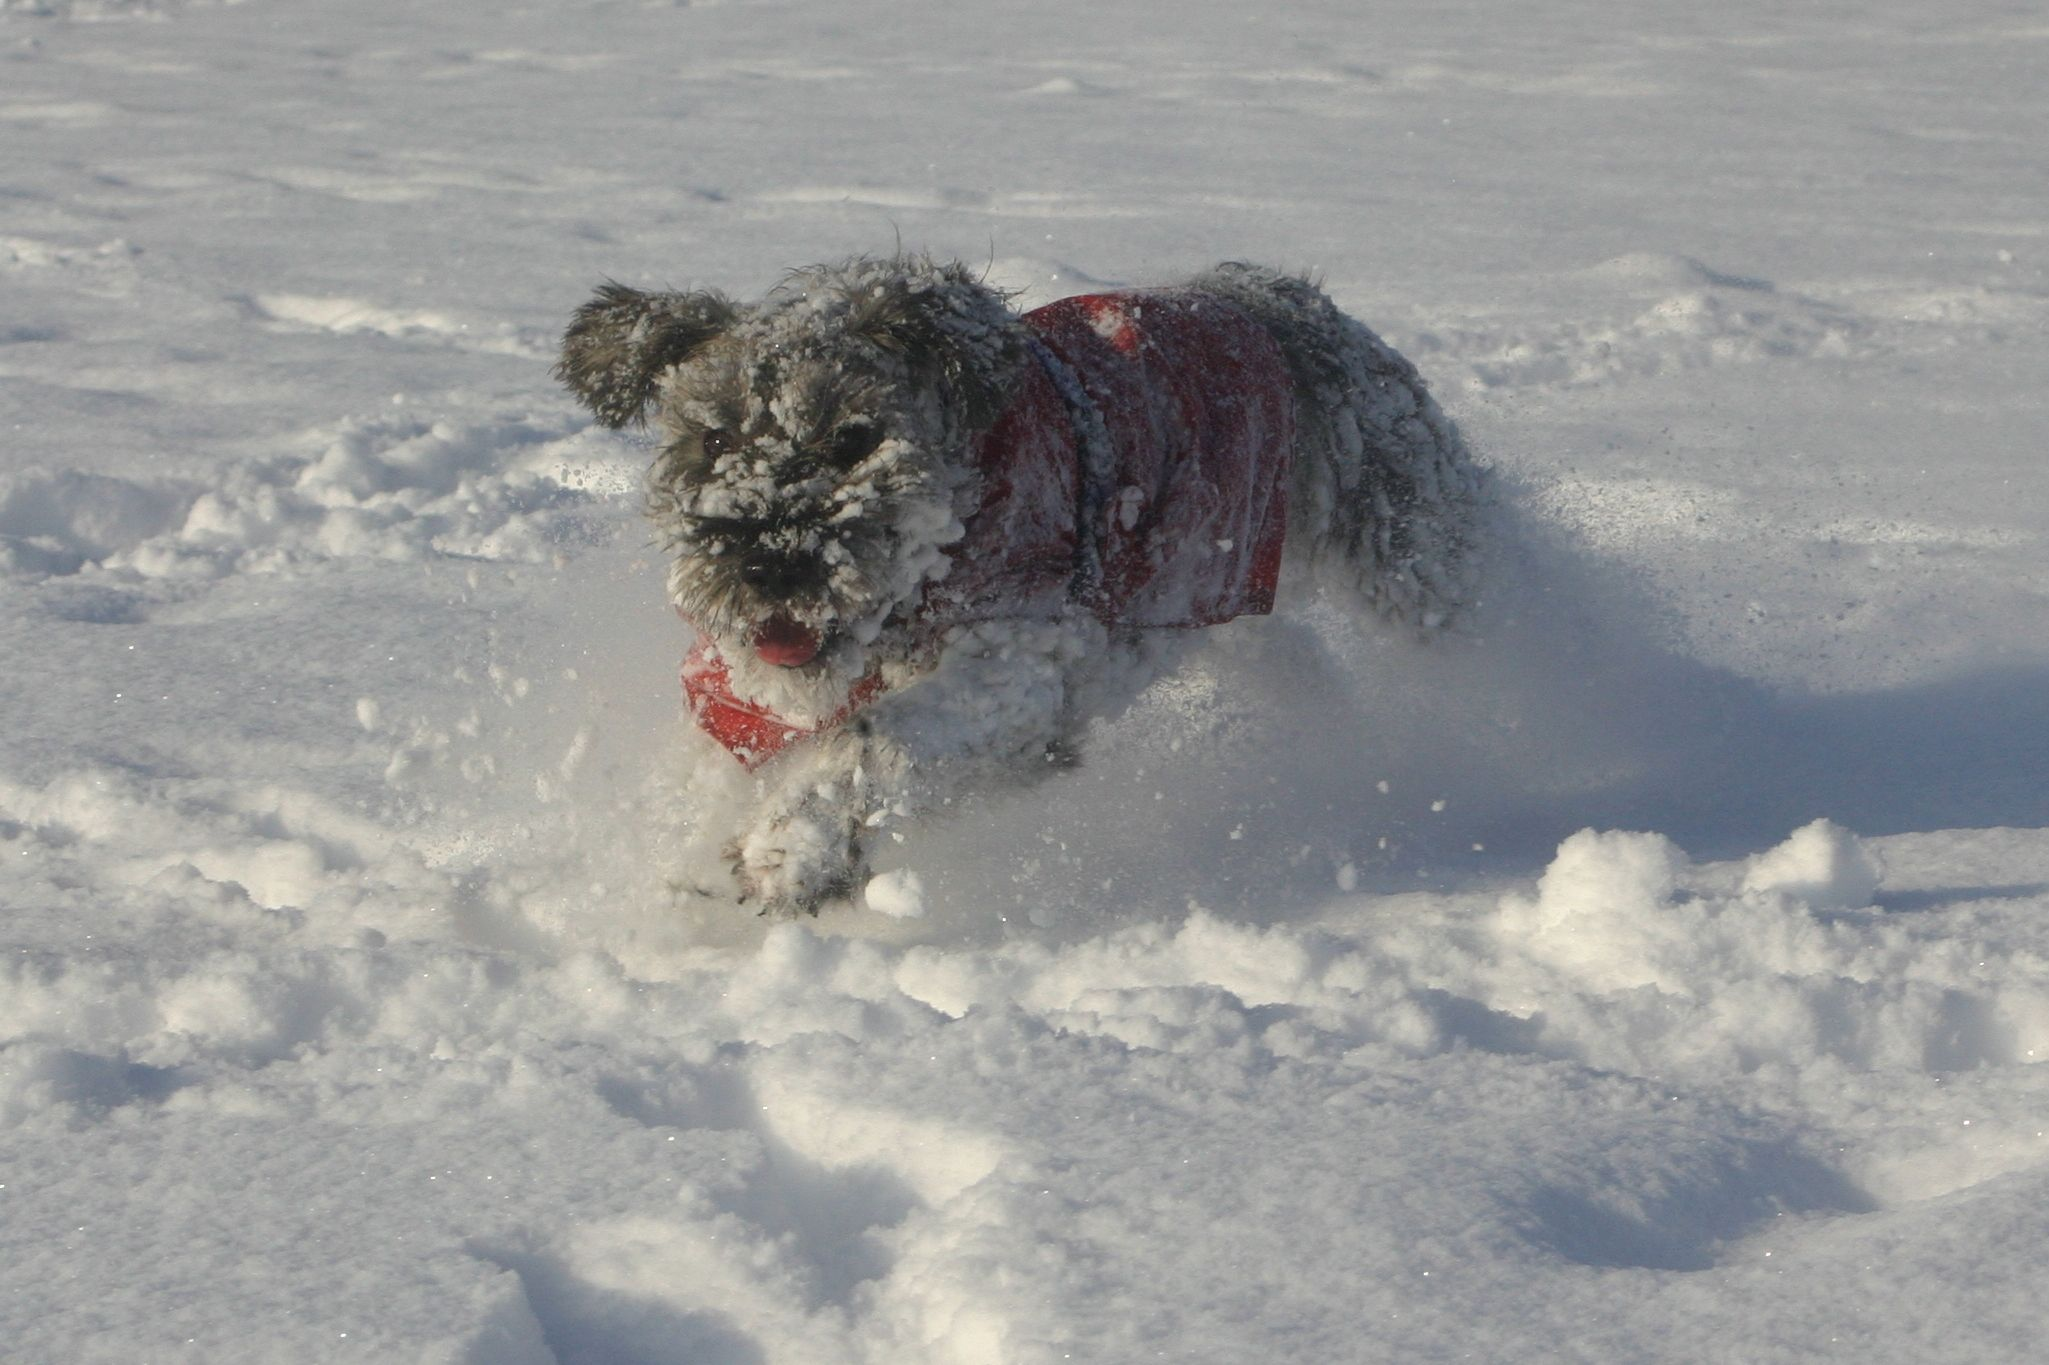 My schnauzer Scamp enjoying the snow, Preseli Hills, Pembrokeshire, January 2013.